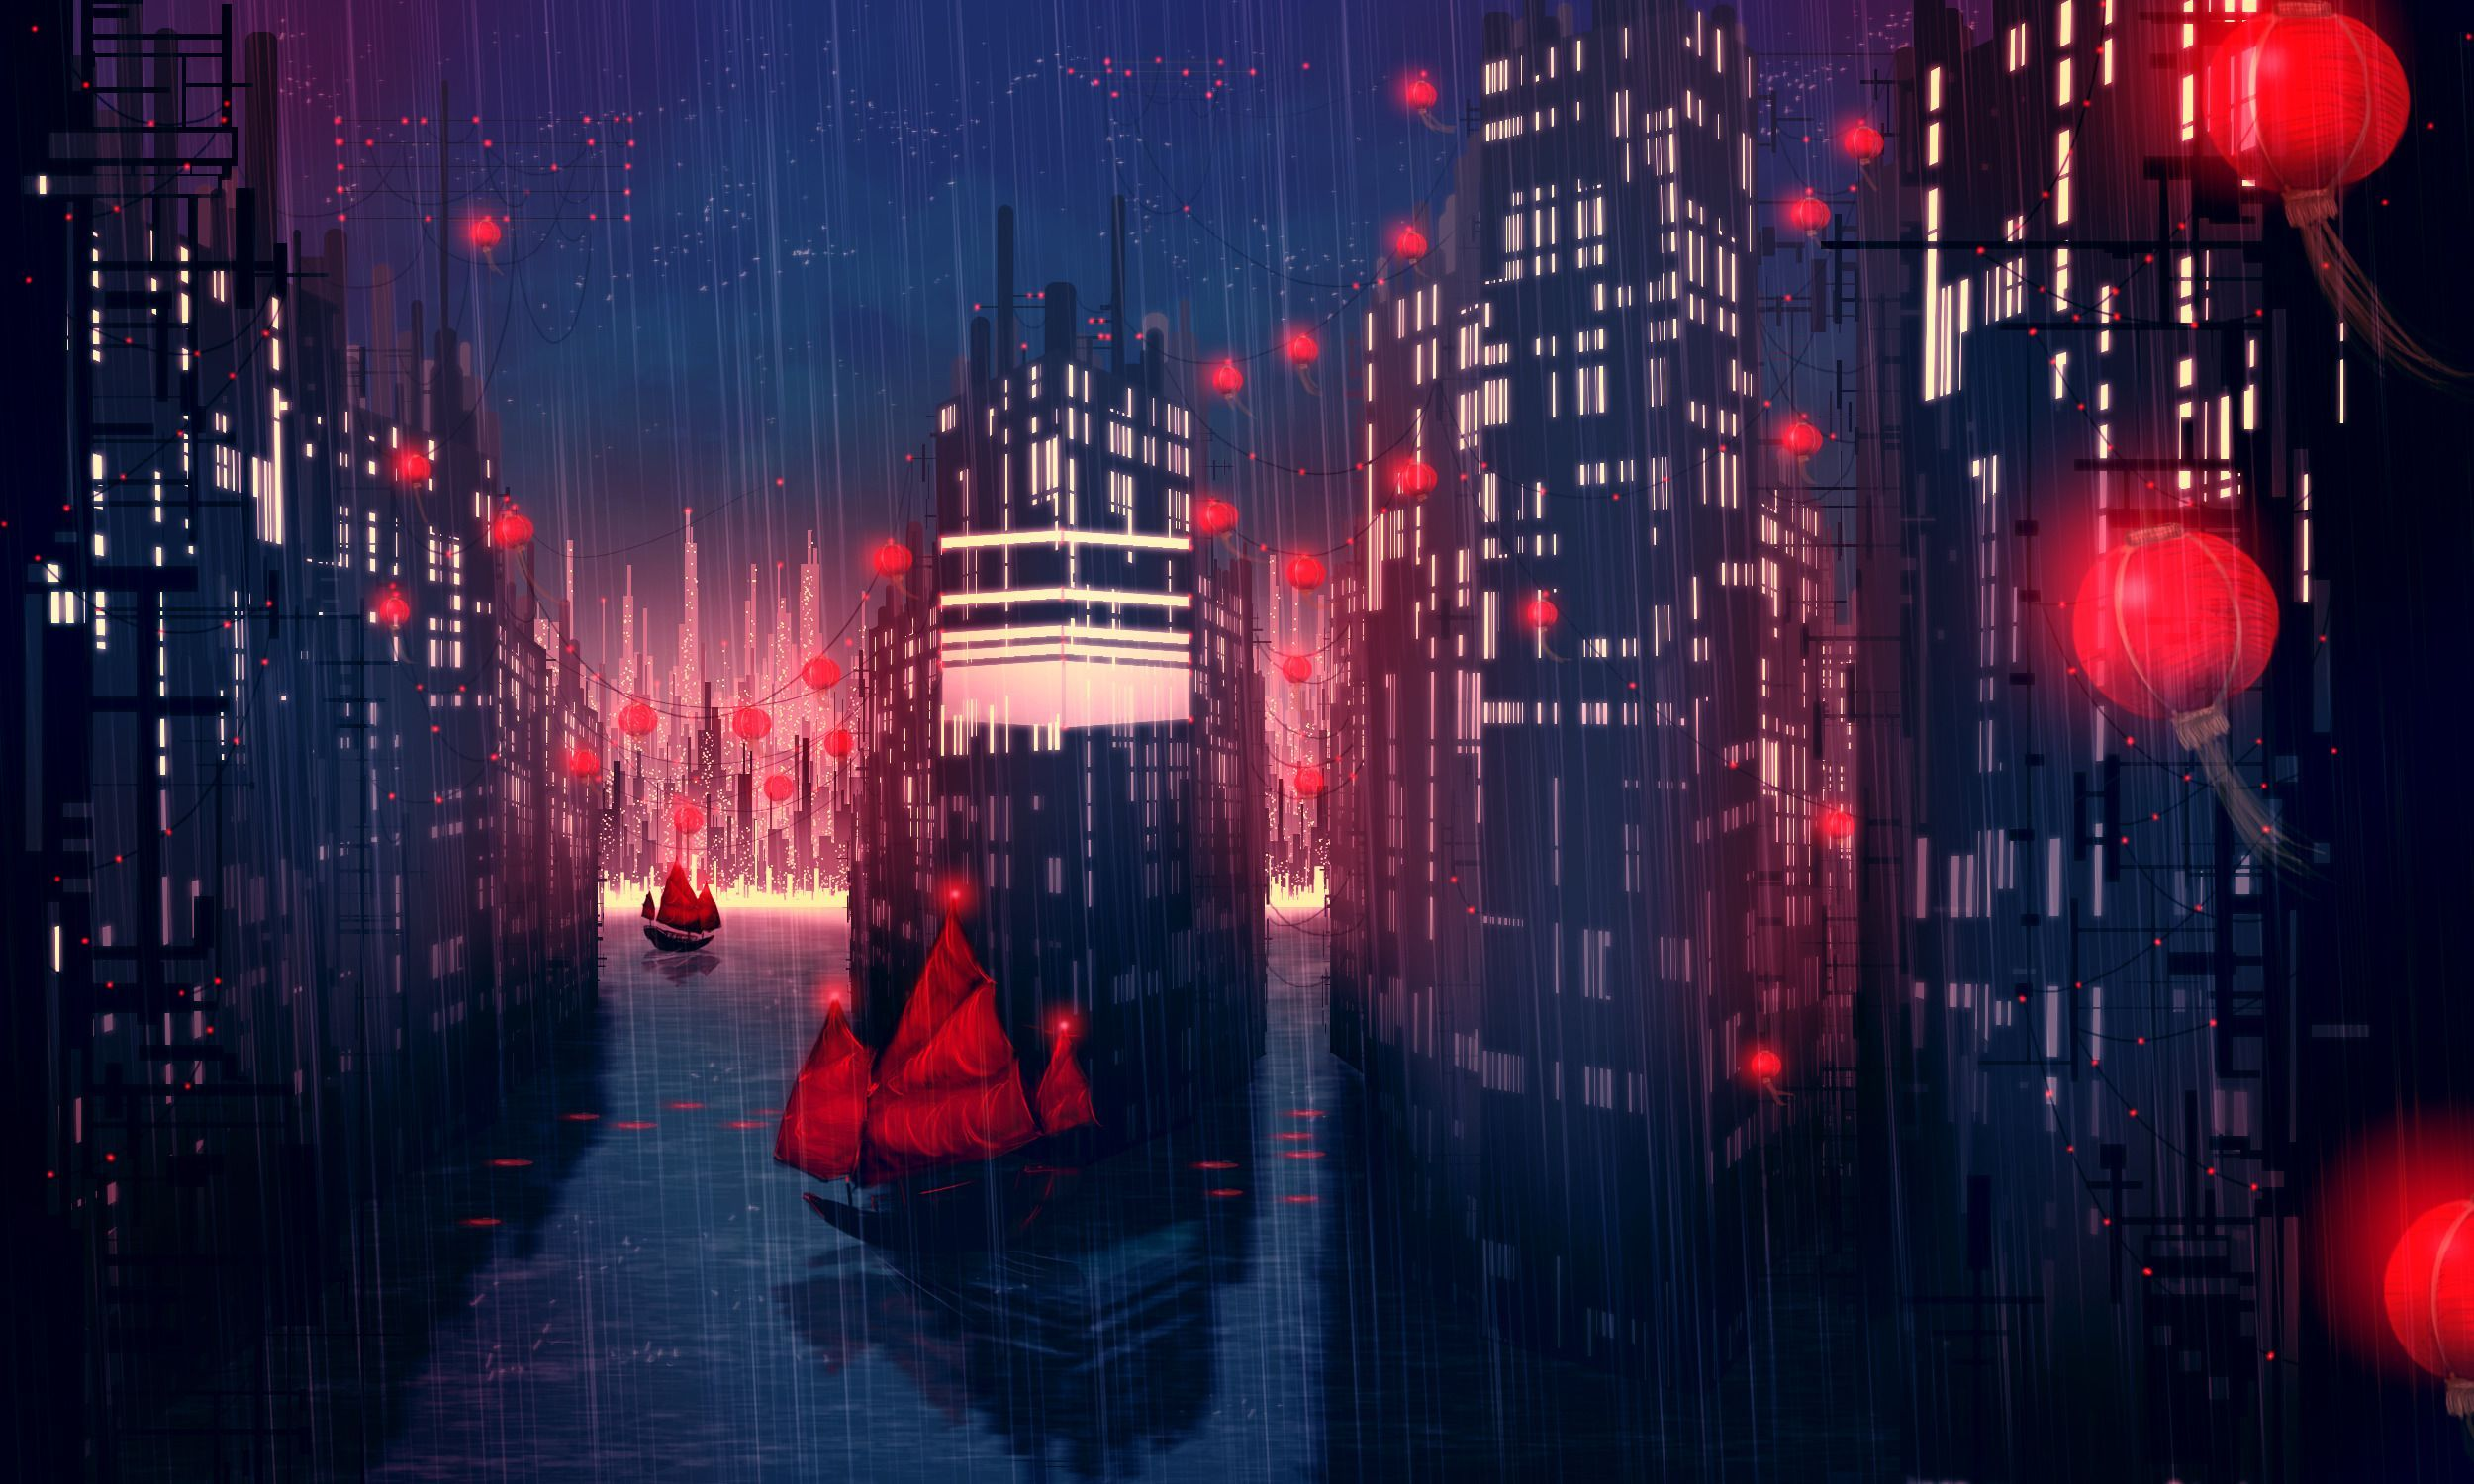 Rain Anime Wallpapers Top Free Rain Anime Backgrounds